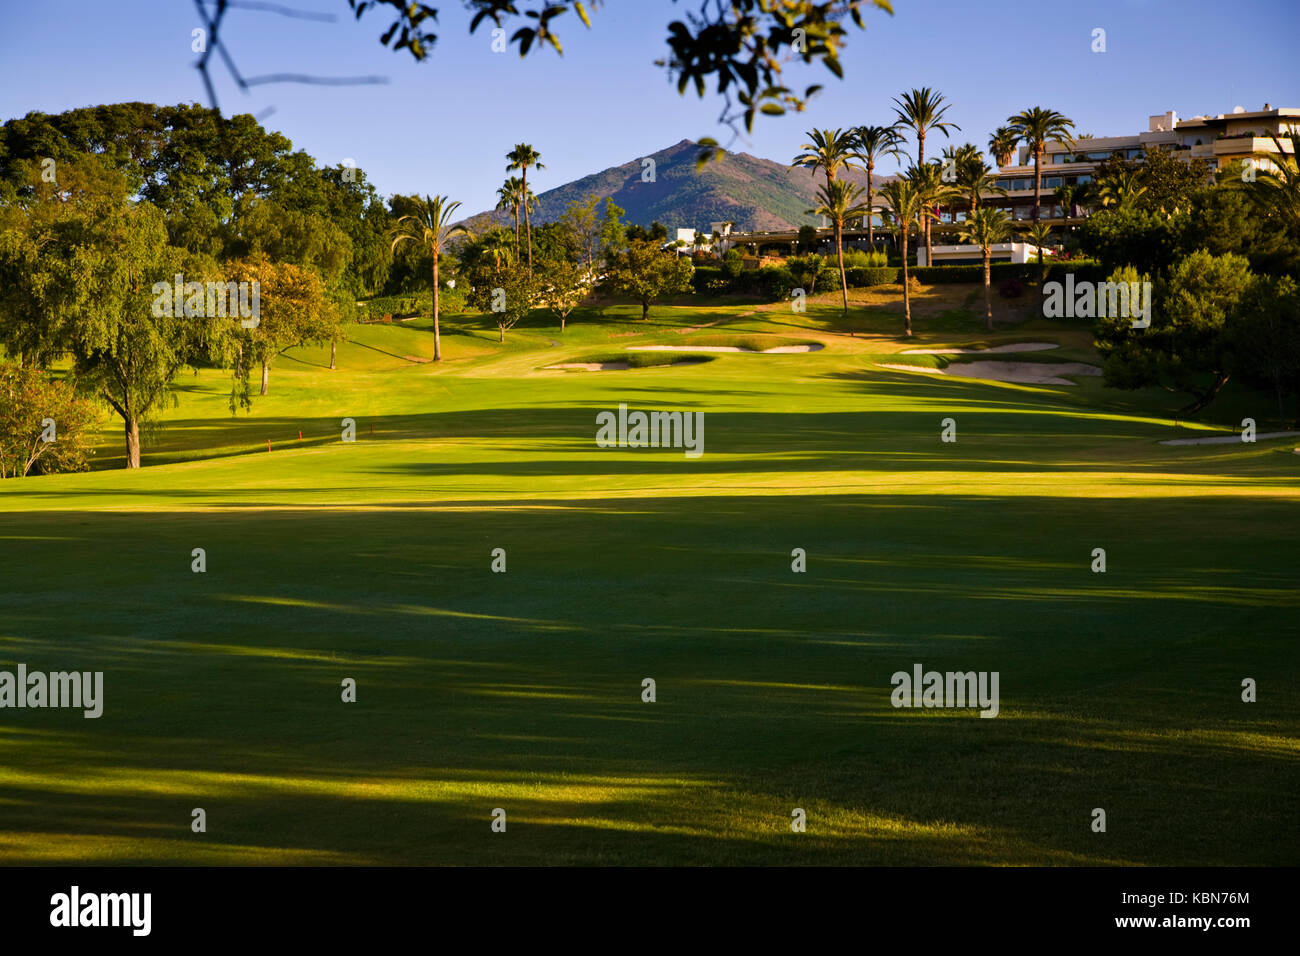 golf courses in Andalucia Stock Photo